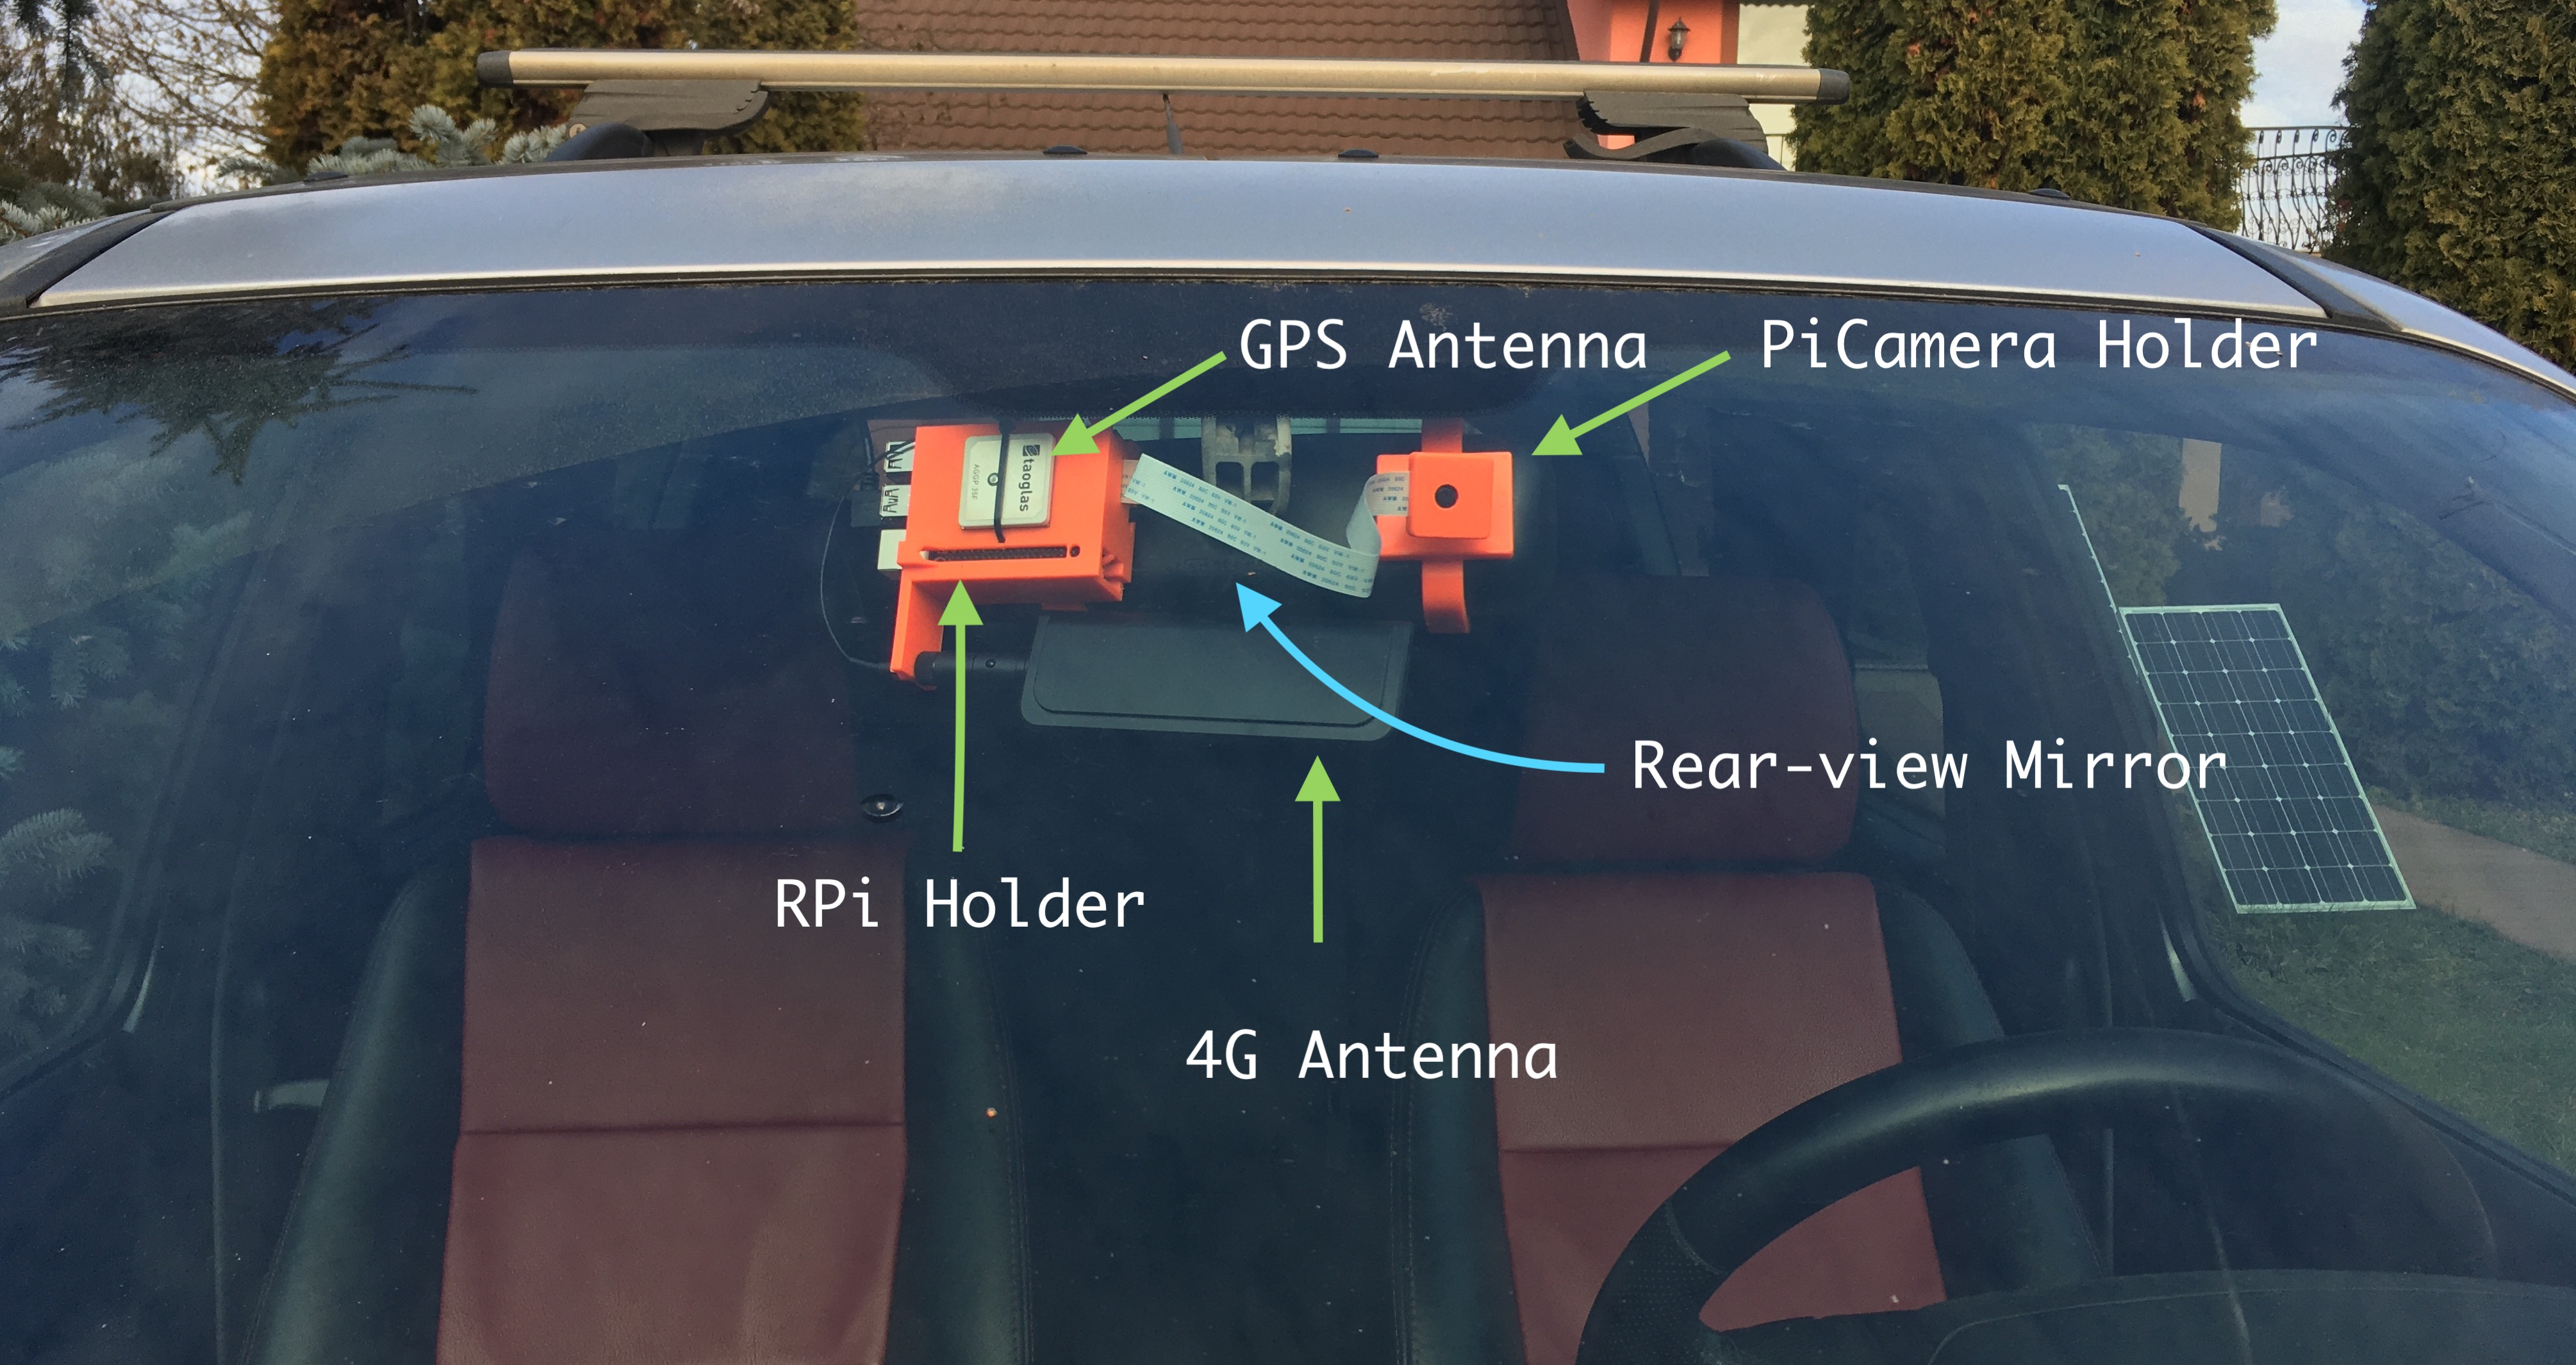 Raspberry Pi client with 4G access and onboard GPS that connects to cortex's APIs for inference